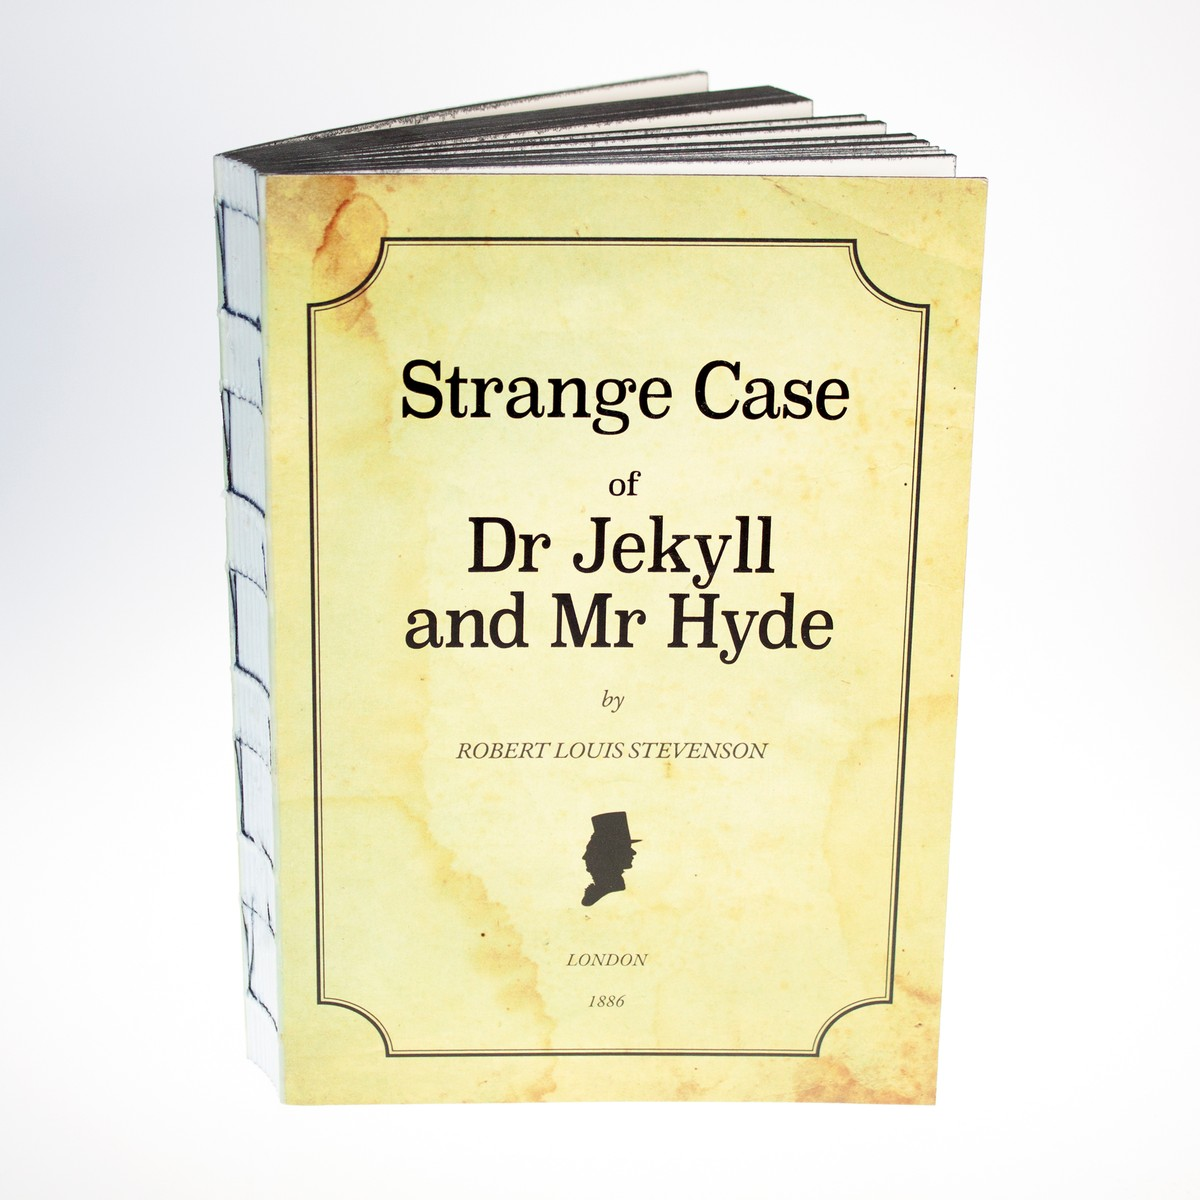 Photo of Jekyll and Hyde Notebook